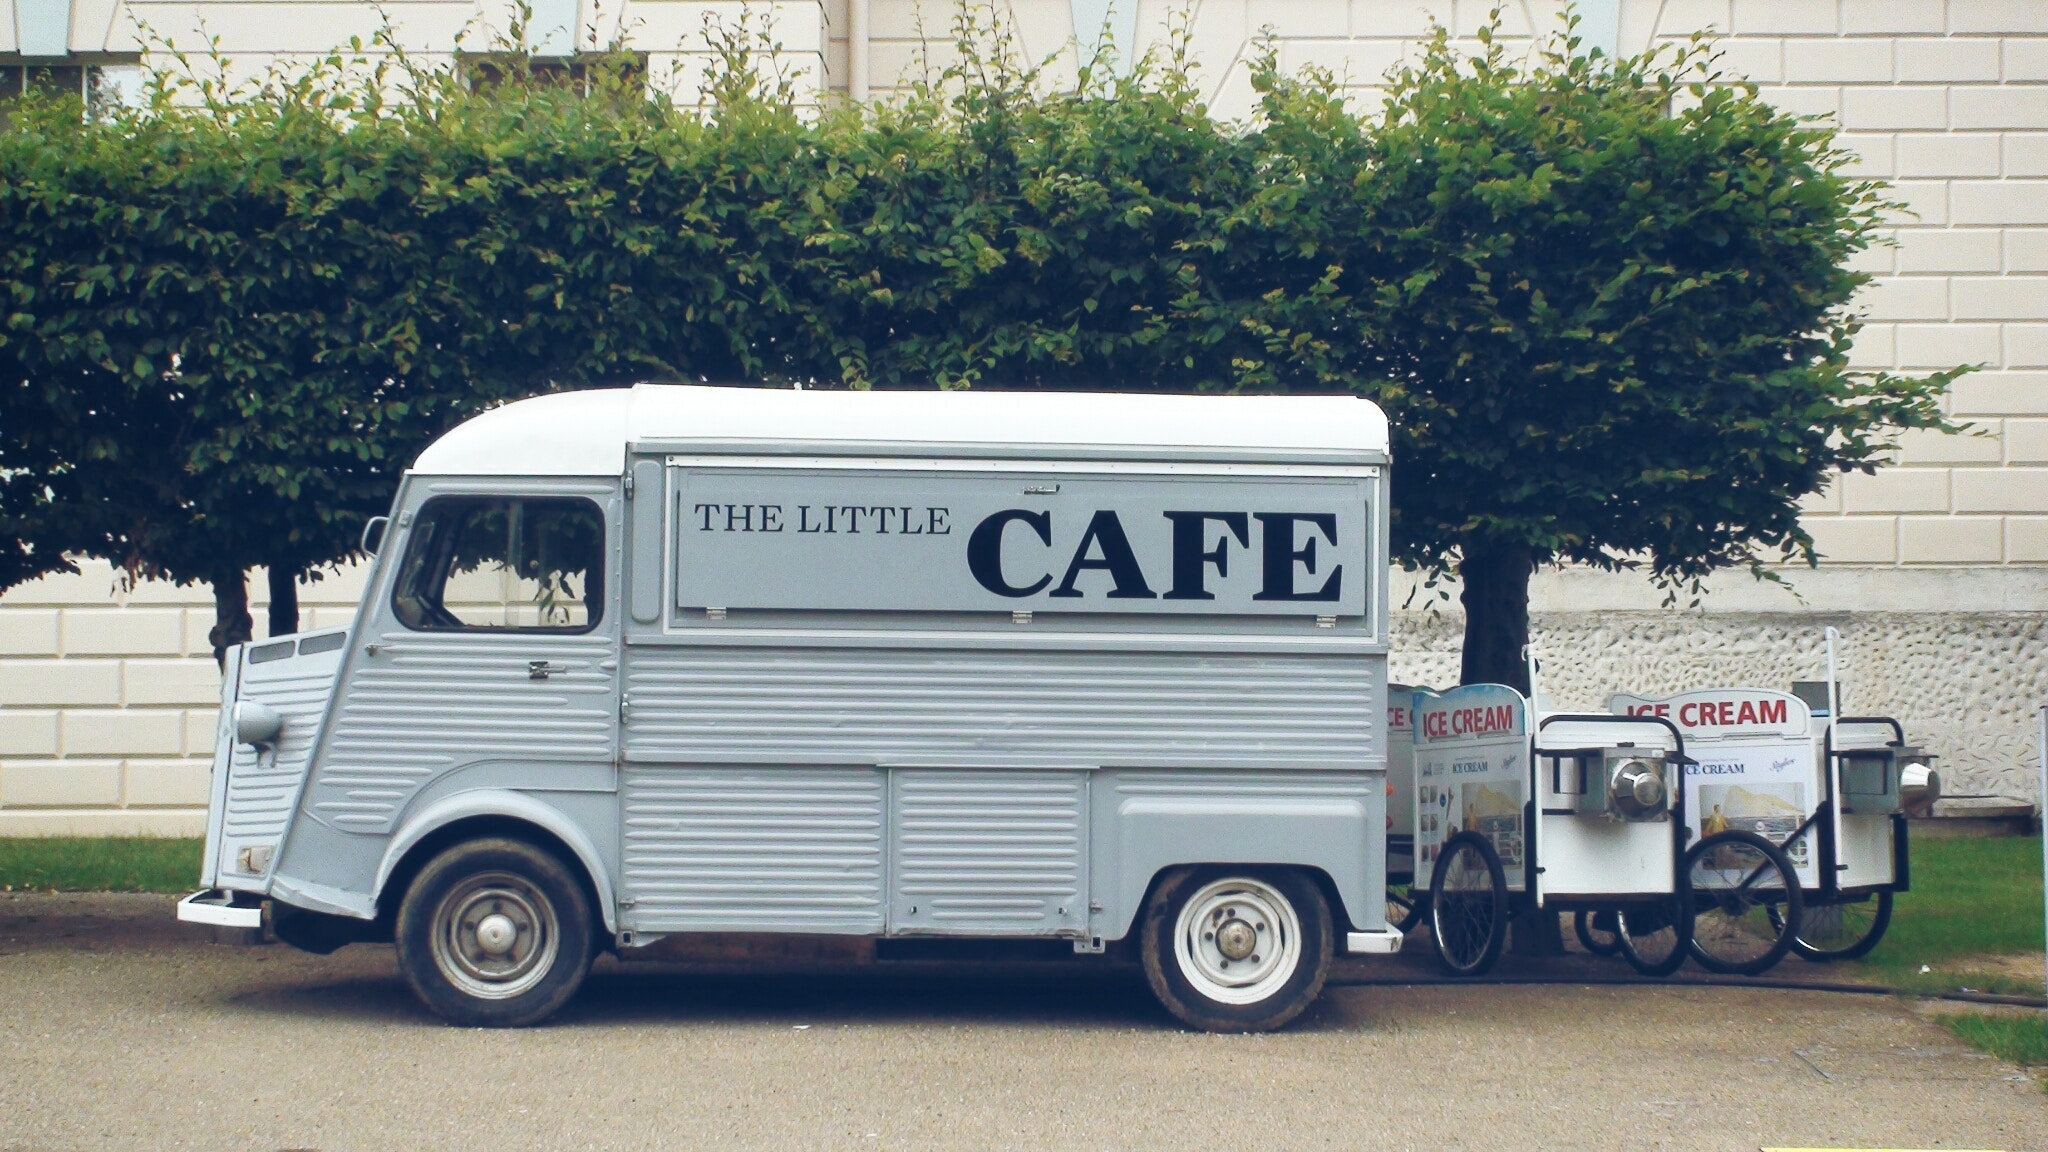 small cafe van